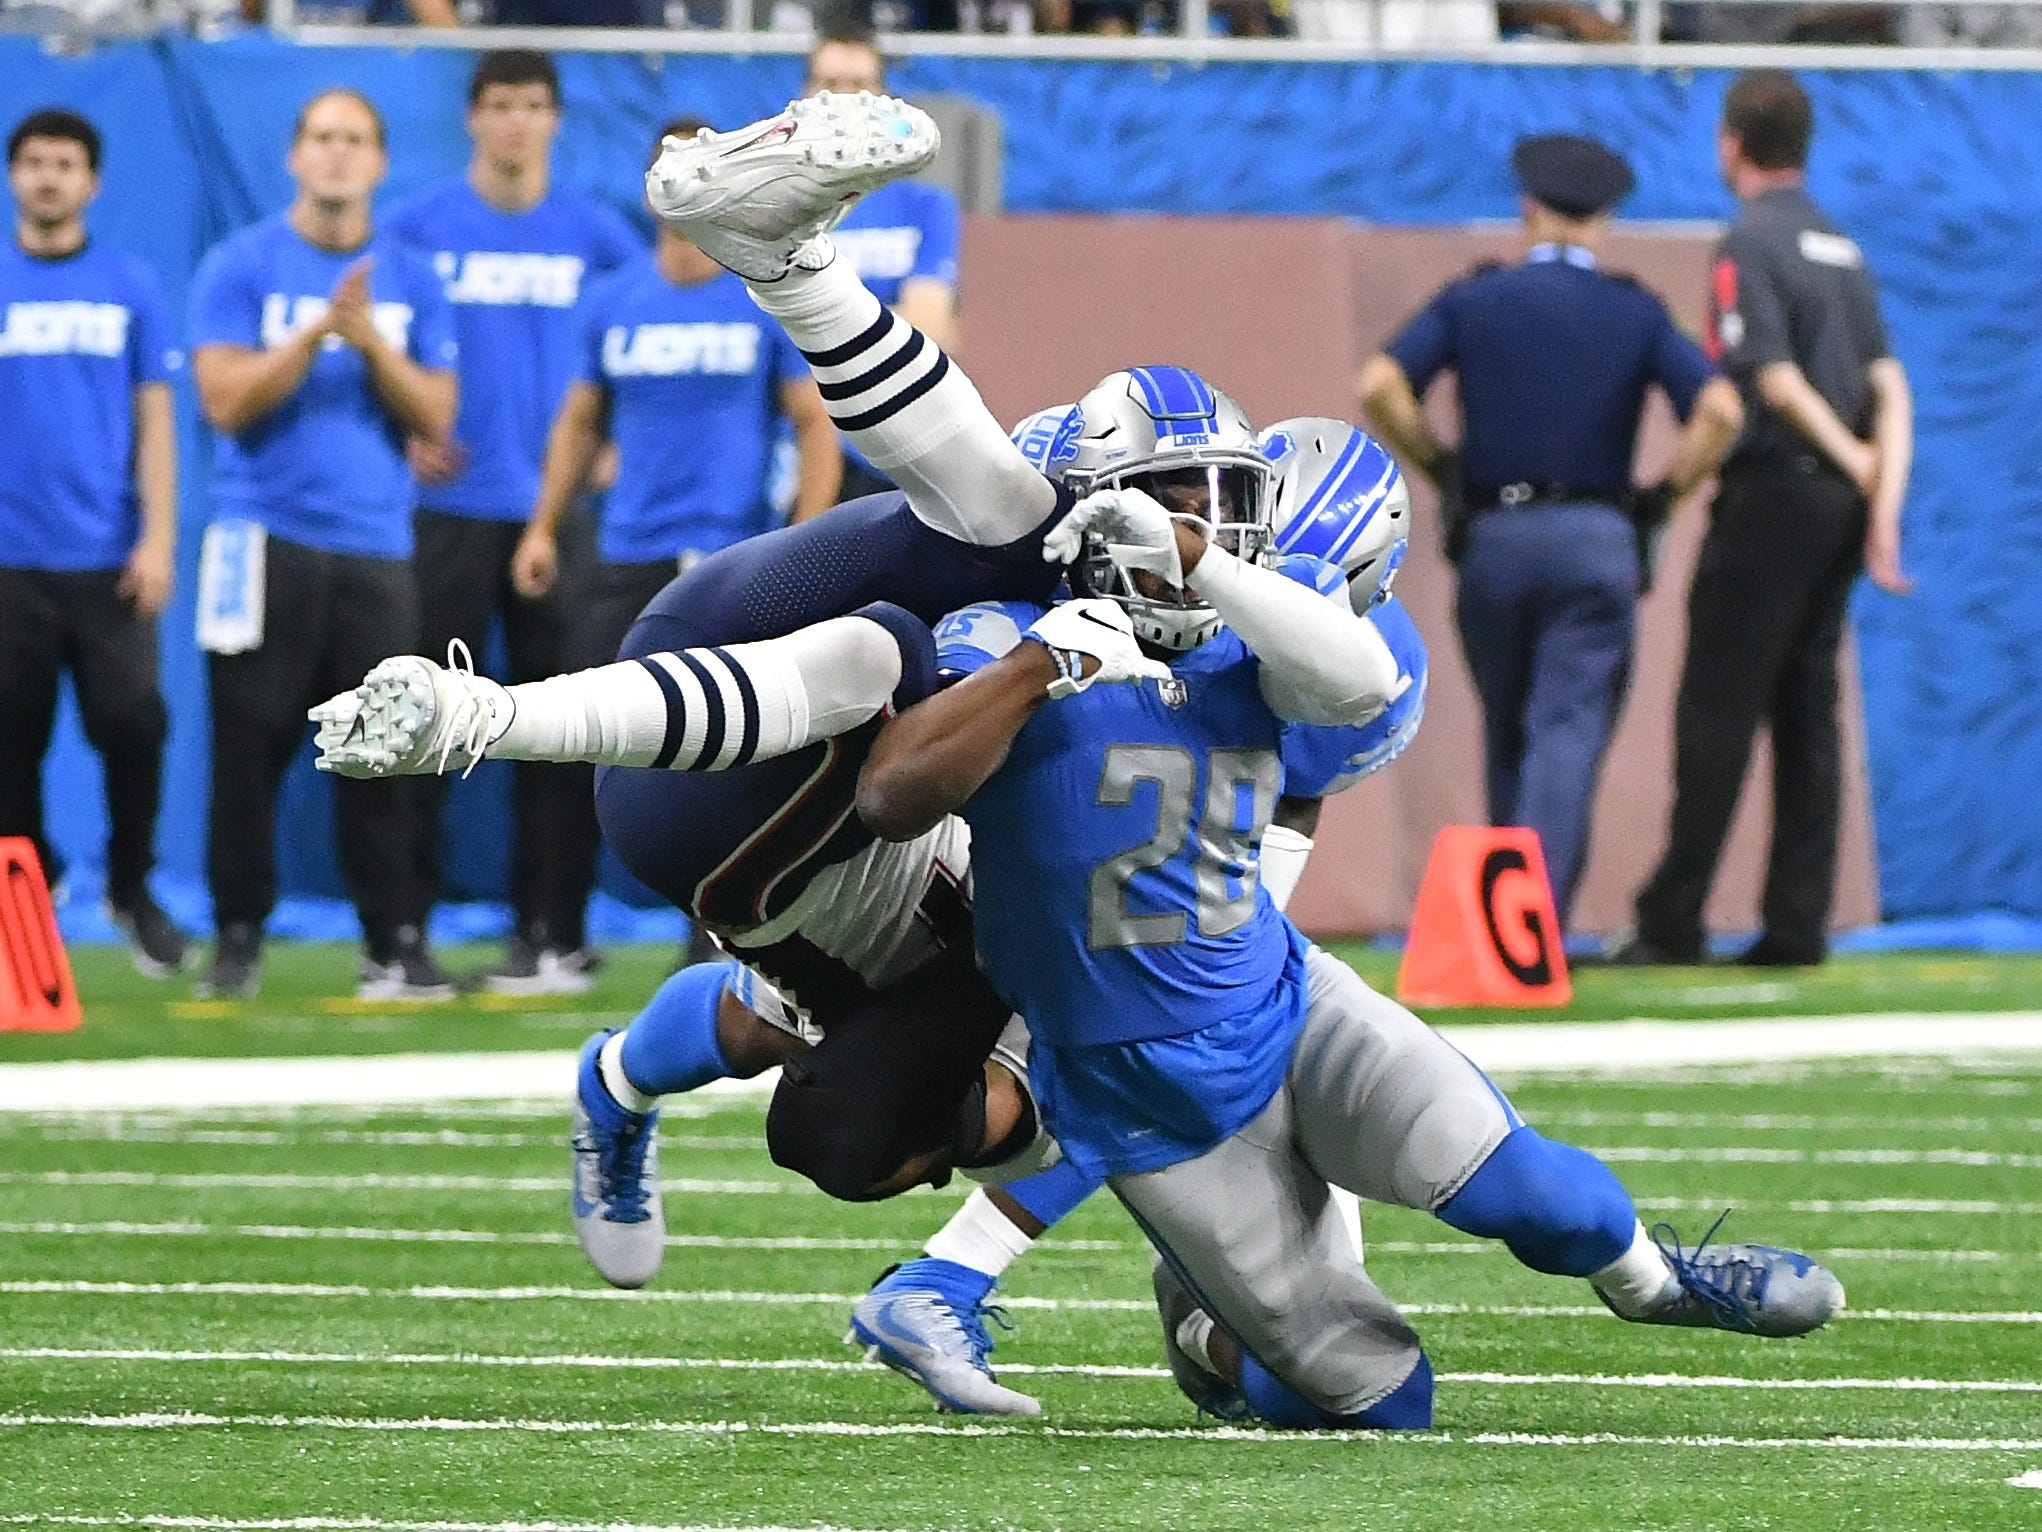 Lions' Quandre Diggs and Tavon Wilson brings down Patriots' Rob Gronkowski after a reception in the second quarter.